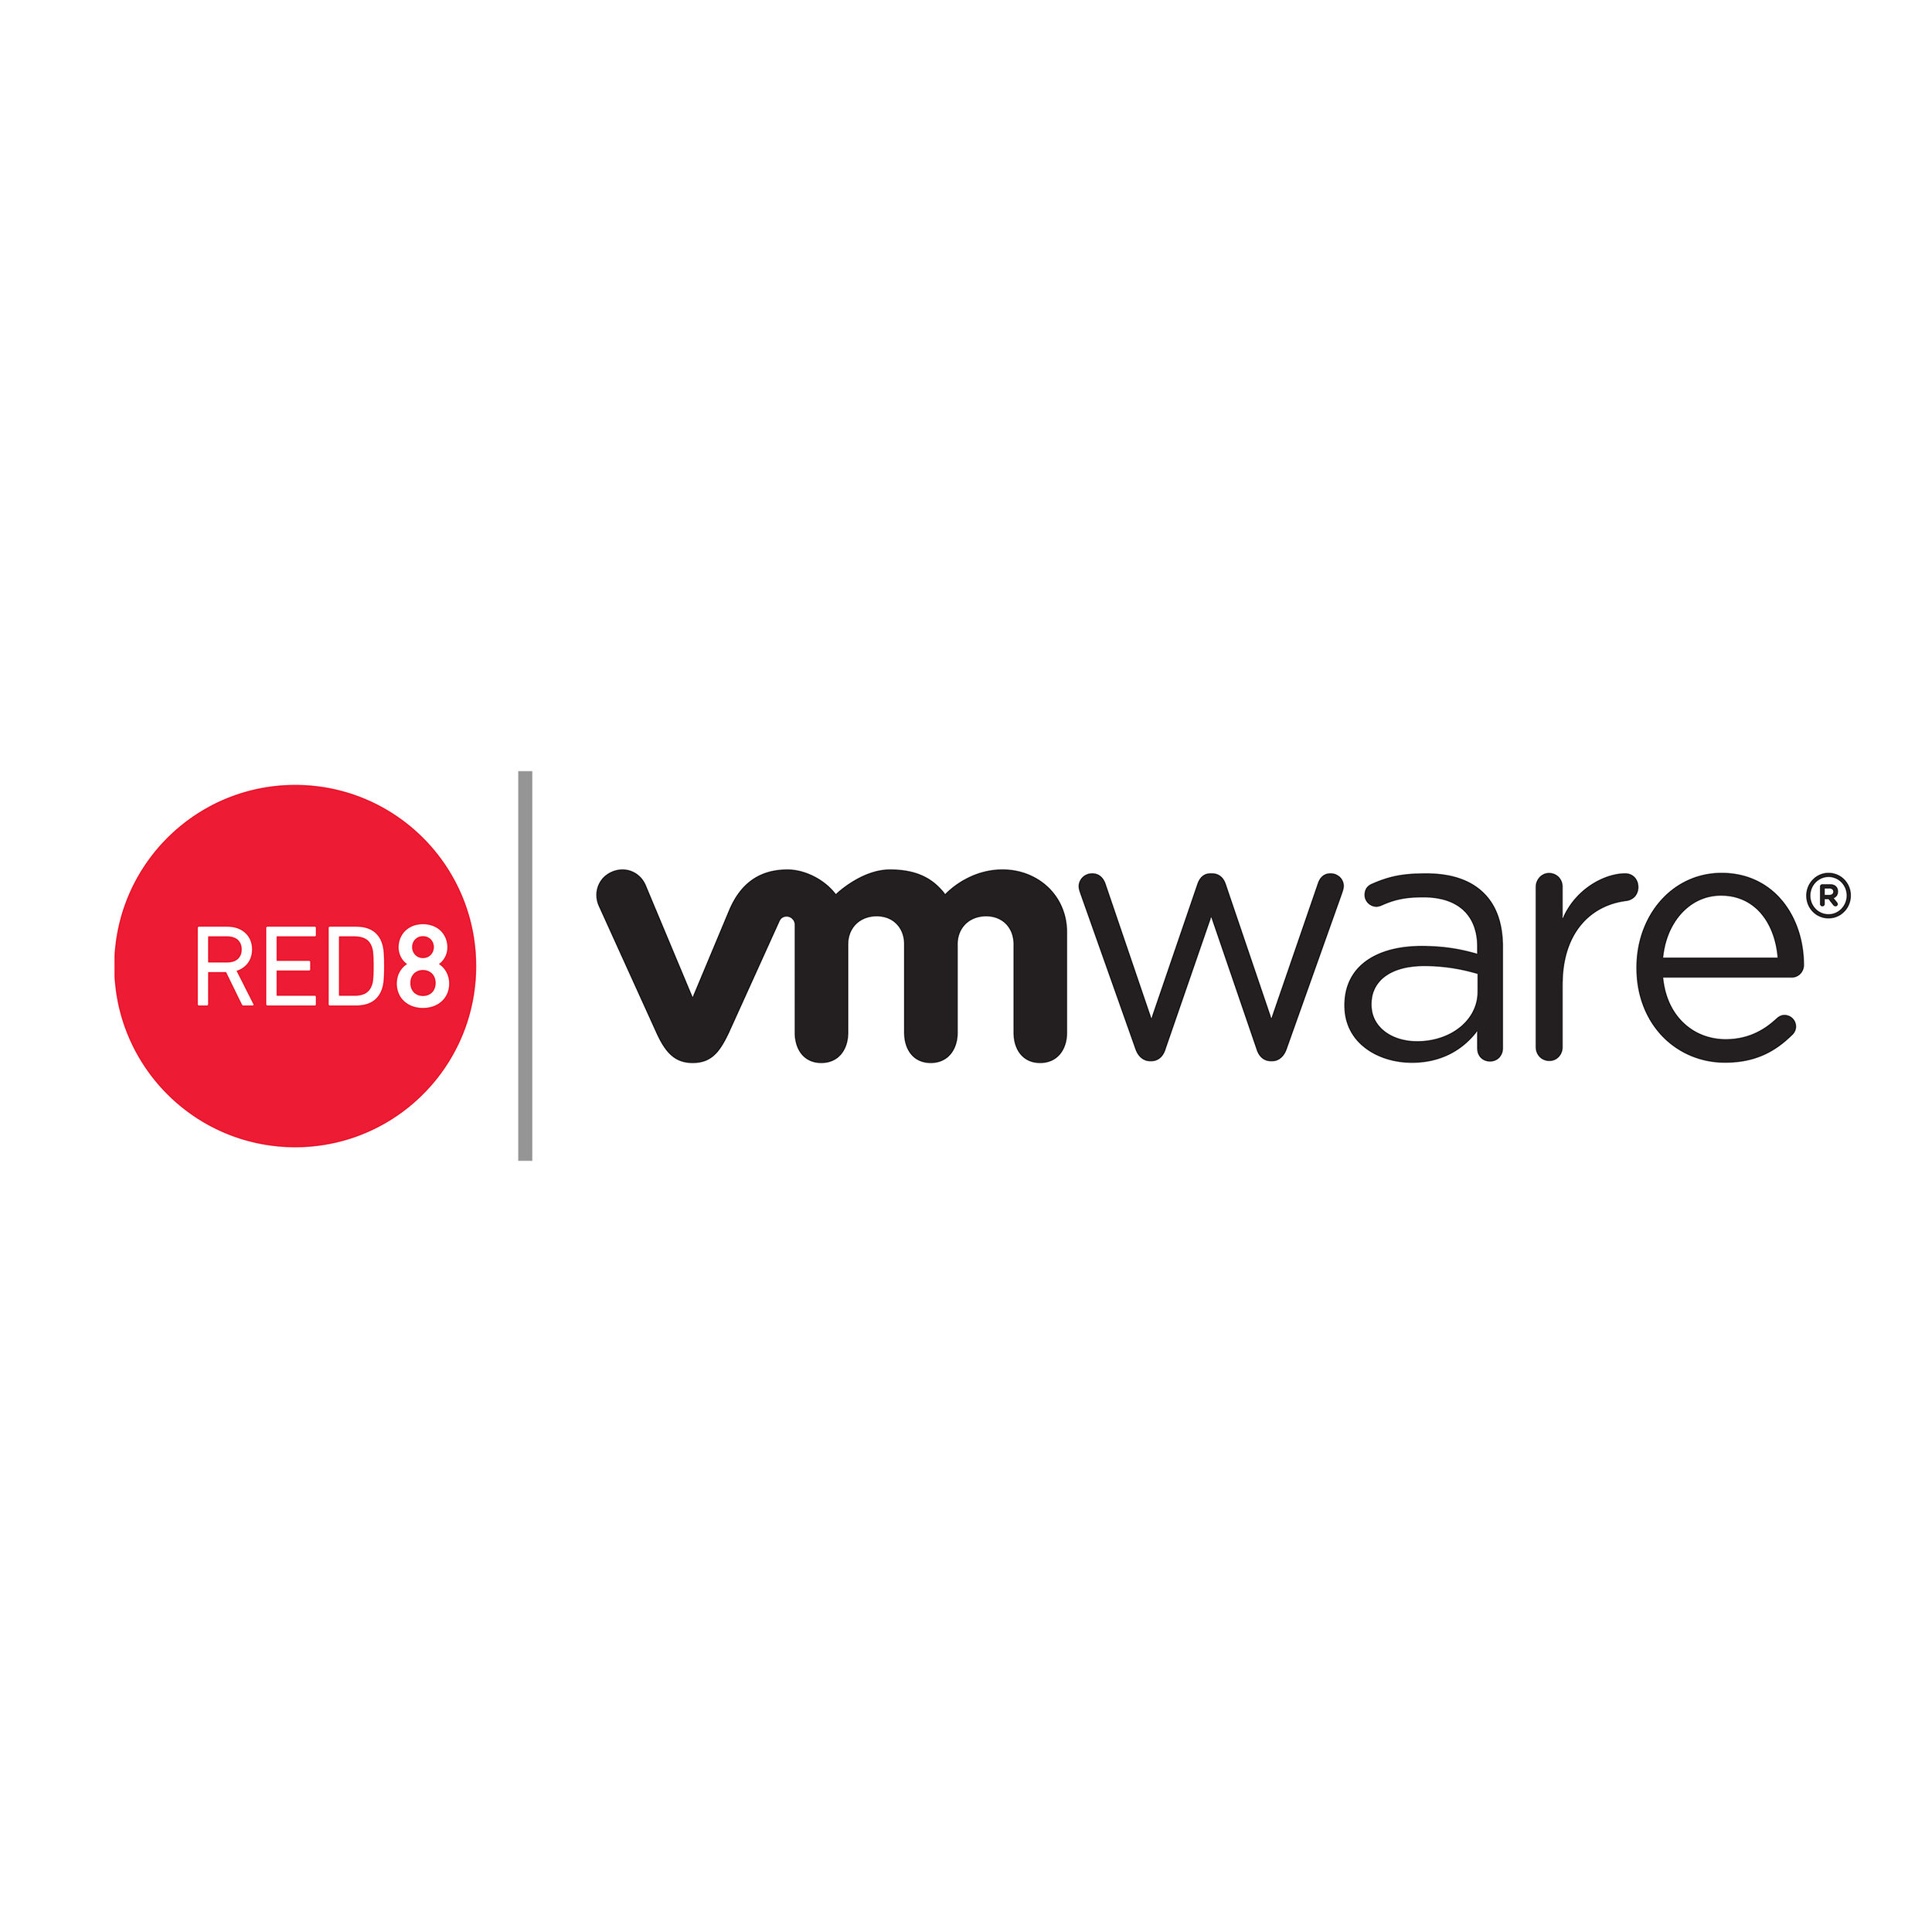 Red8_vmware_grey_square.jpg